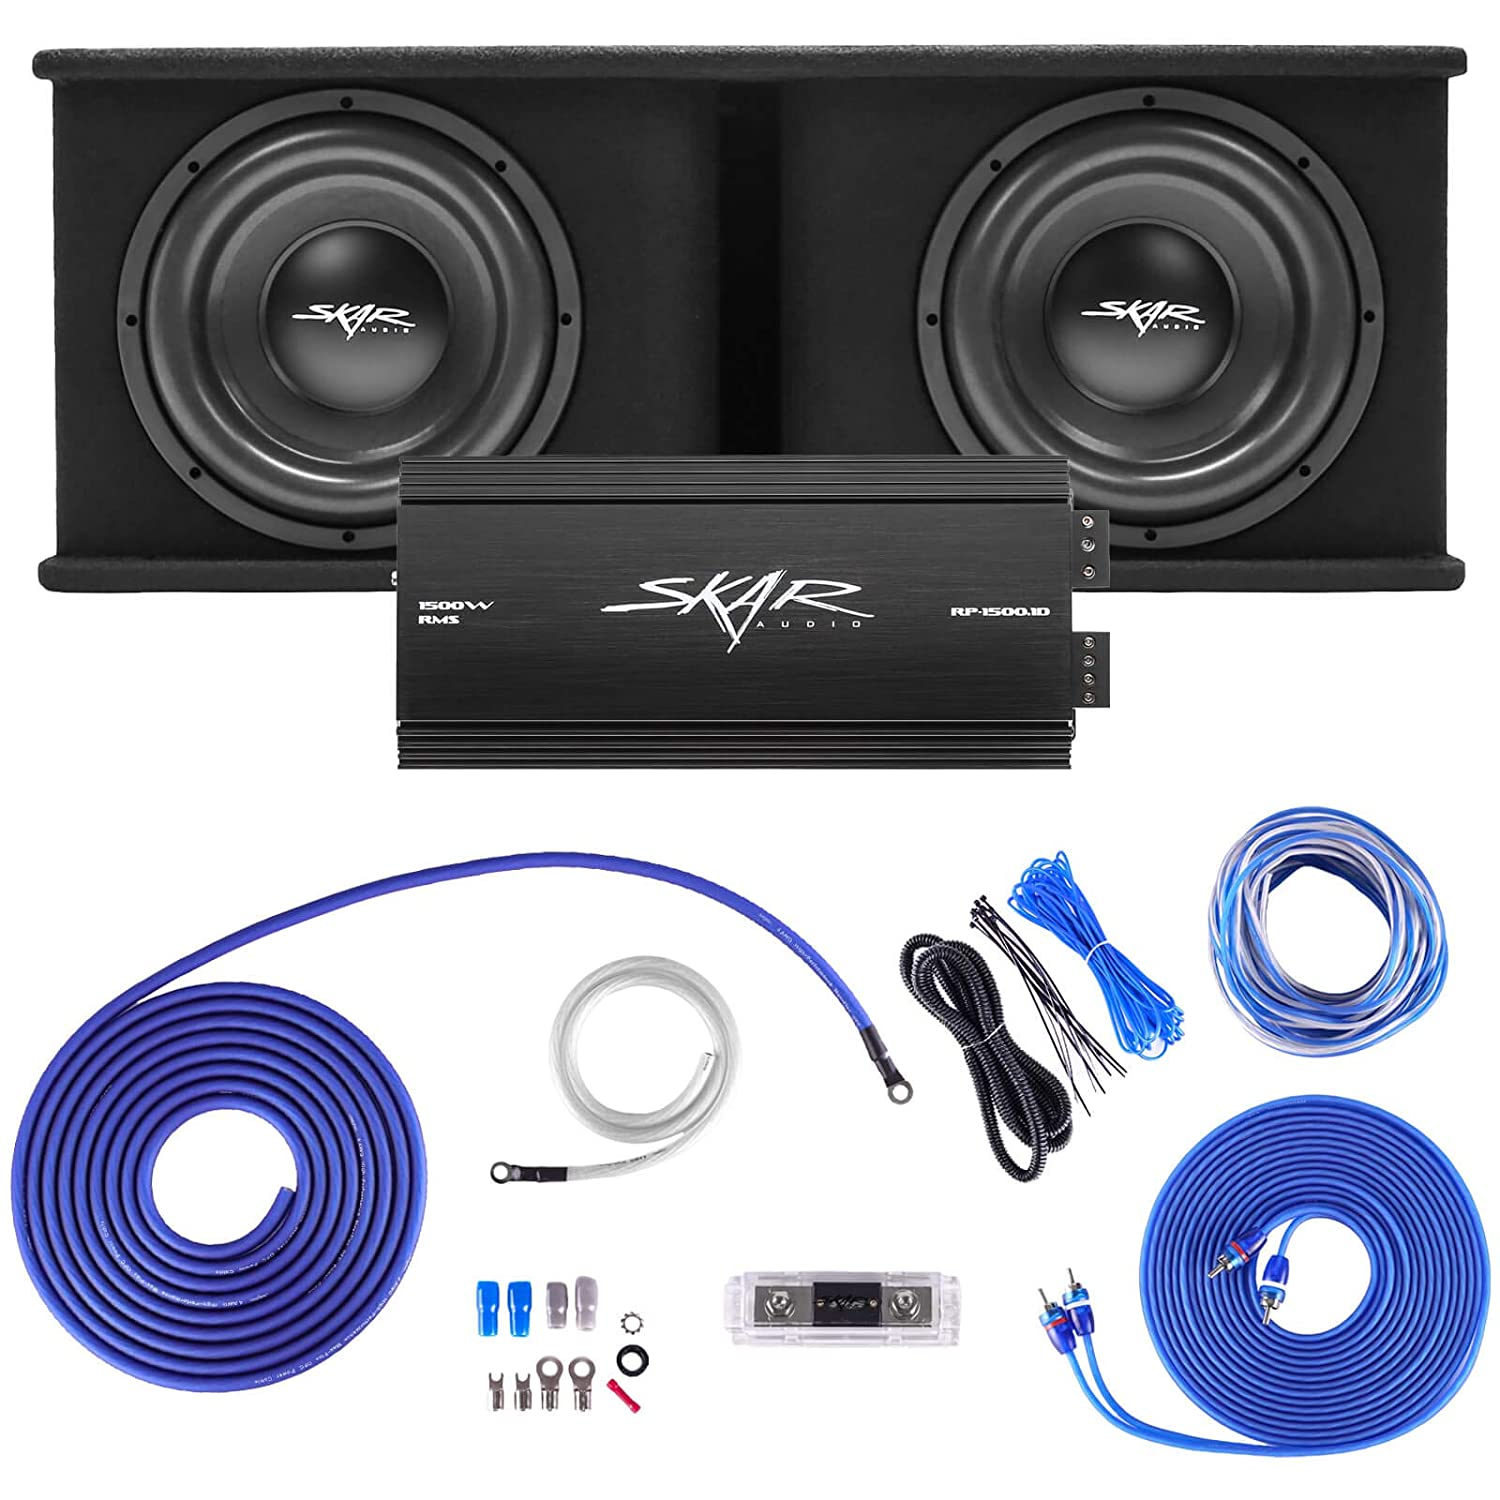 """1. Skar Audio Dual 12"""" Complete 2,400 Watt SDR Series Subwoofer Bass Package - Includes Loaded Enclosure with Amplifier"""